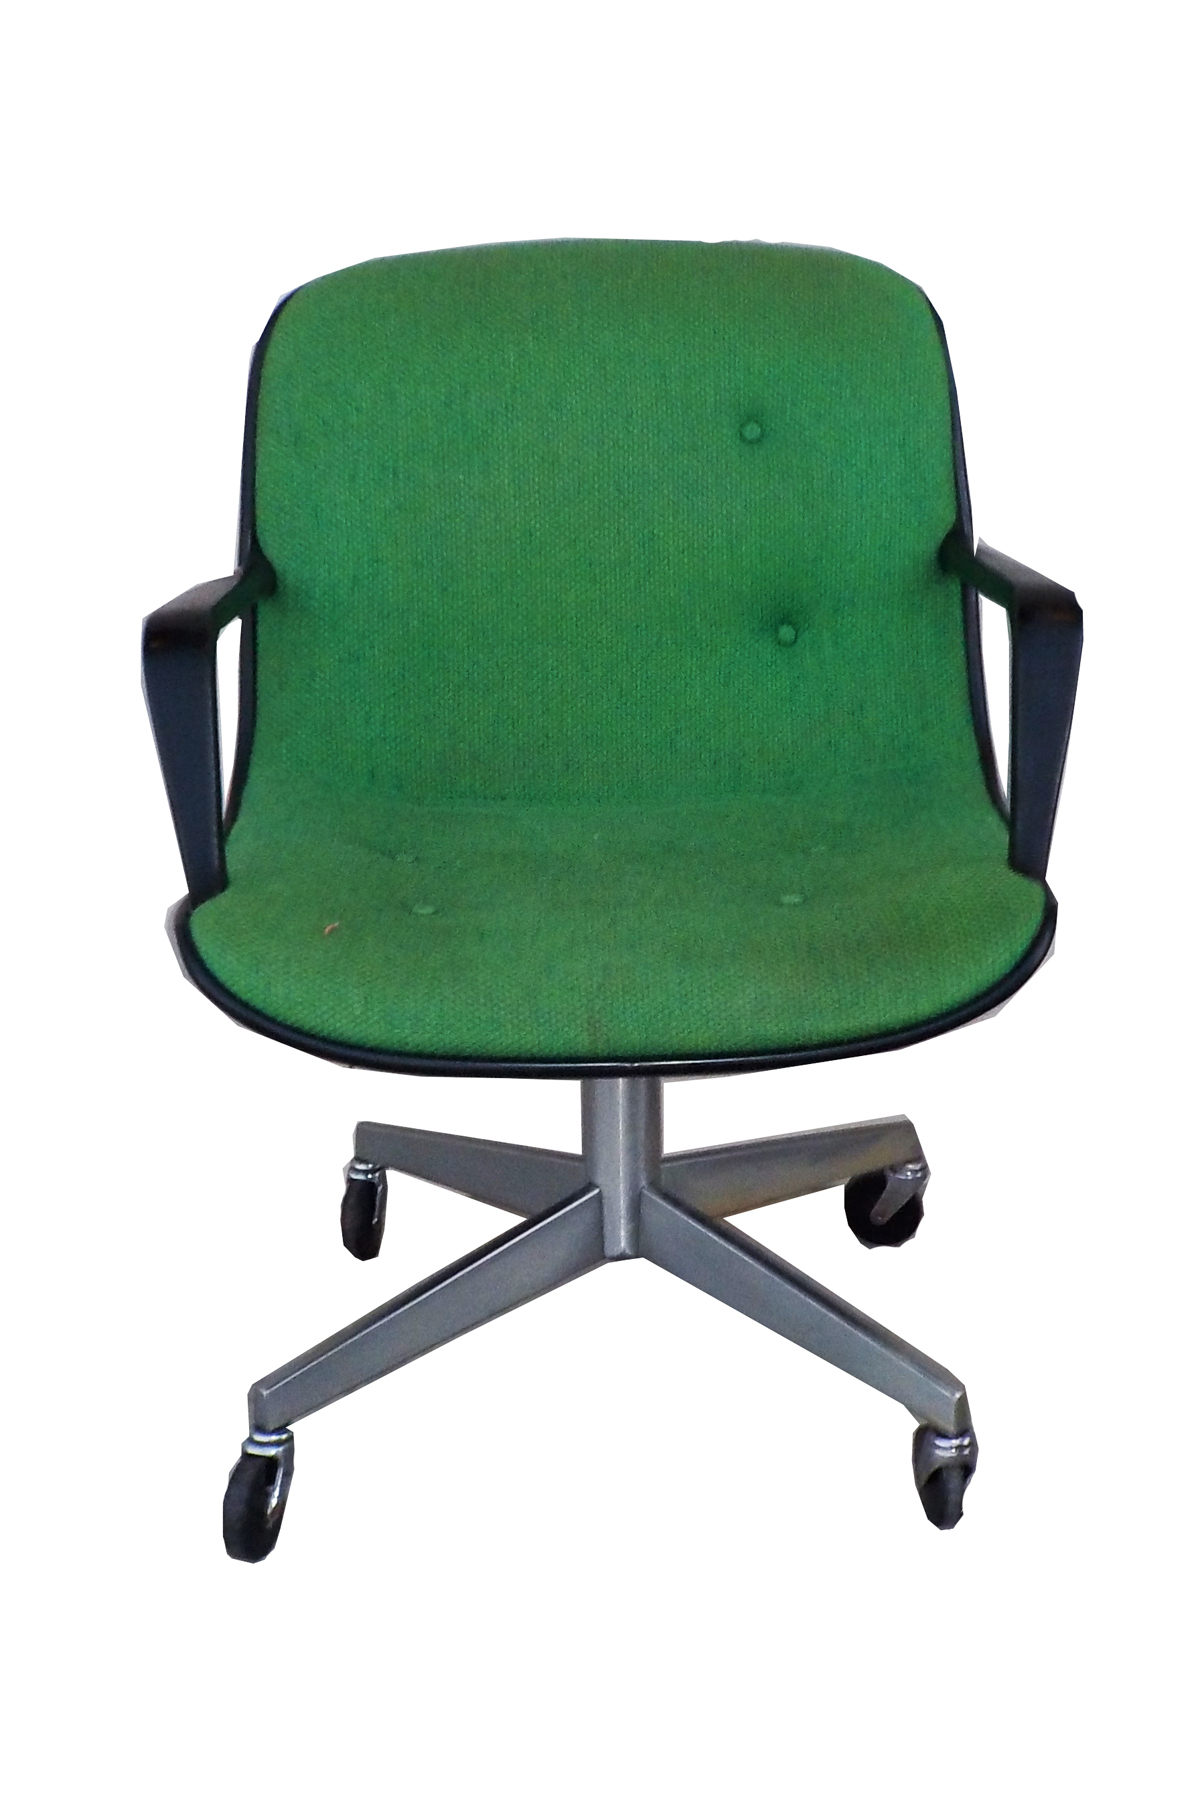 Office chair vintage Eames Midcentury Modern Steelcase Vintage Green Office Chair For Sale Chairish Midcentury Modern Steelcase Vintage Green Office Chair Chairish